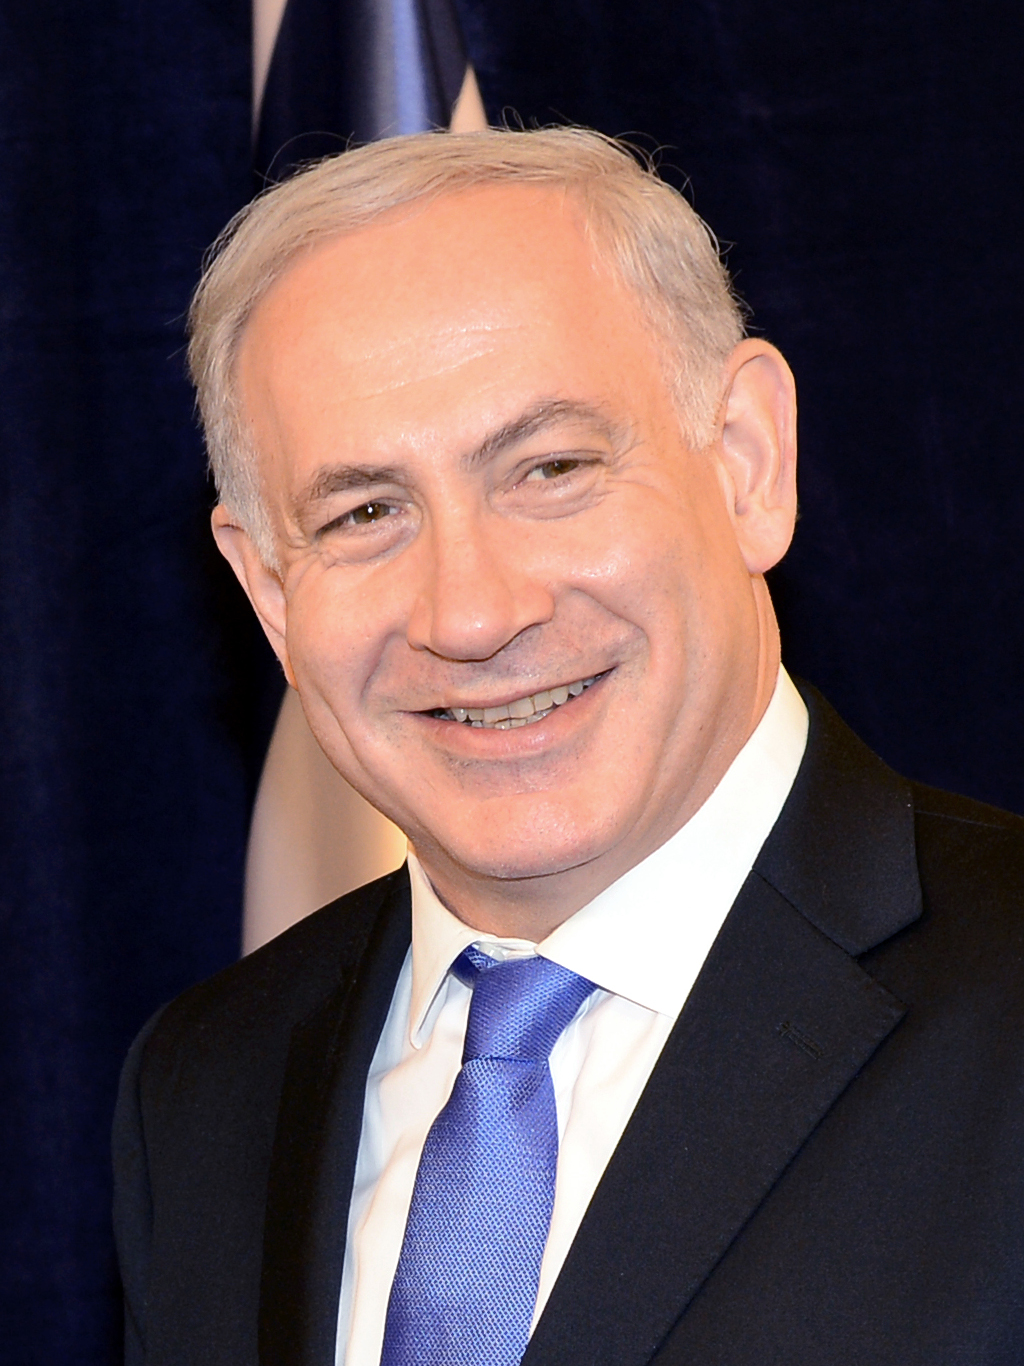 Photo of Benjamin Netanyahu